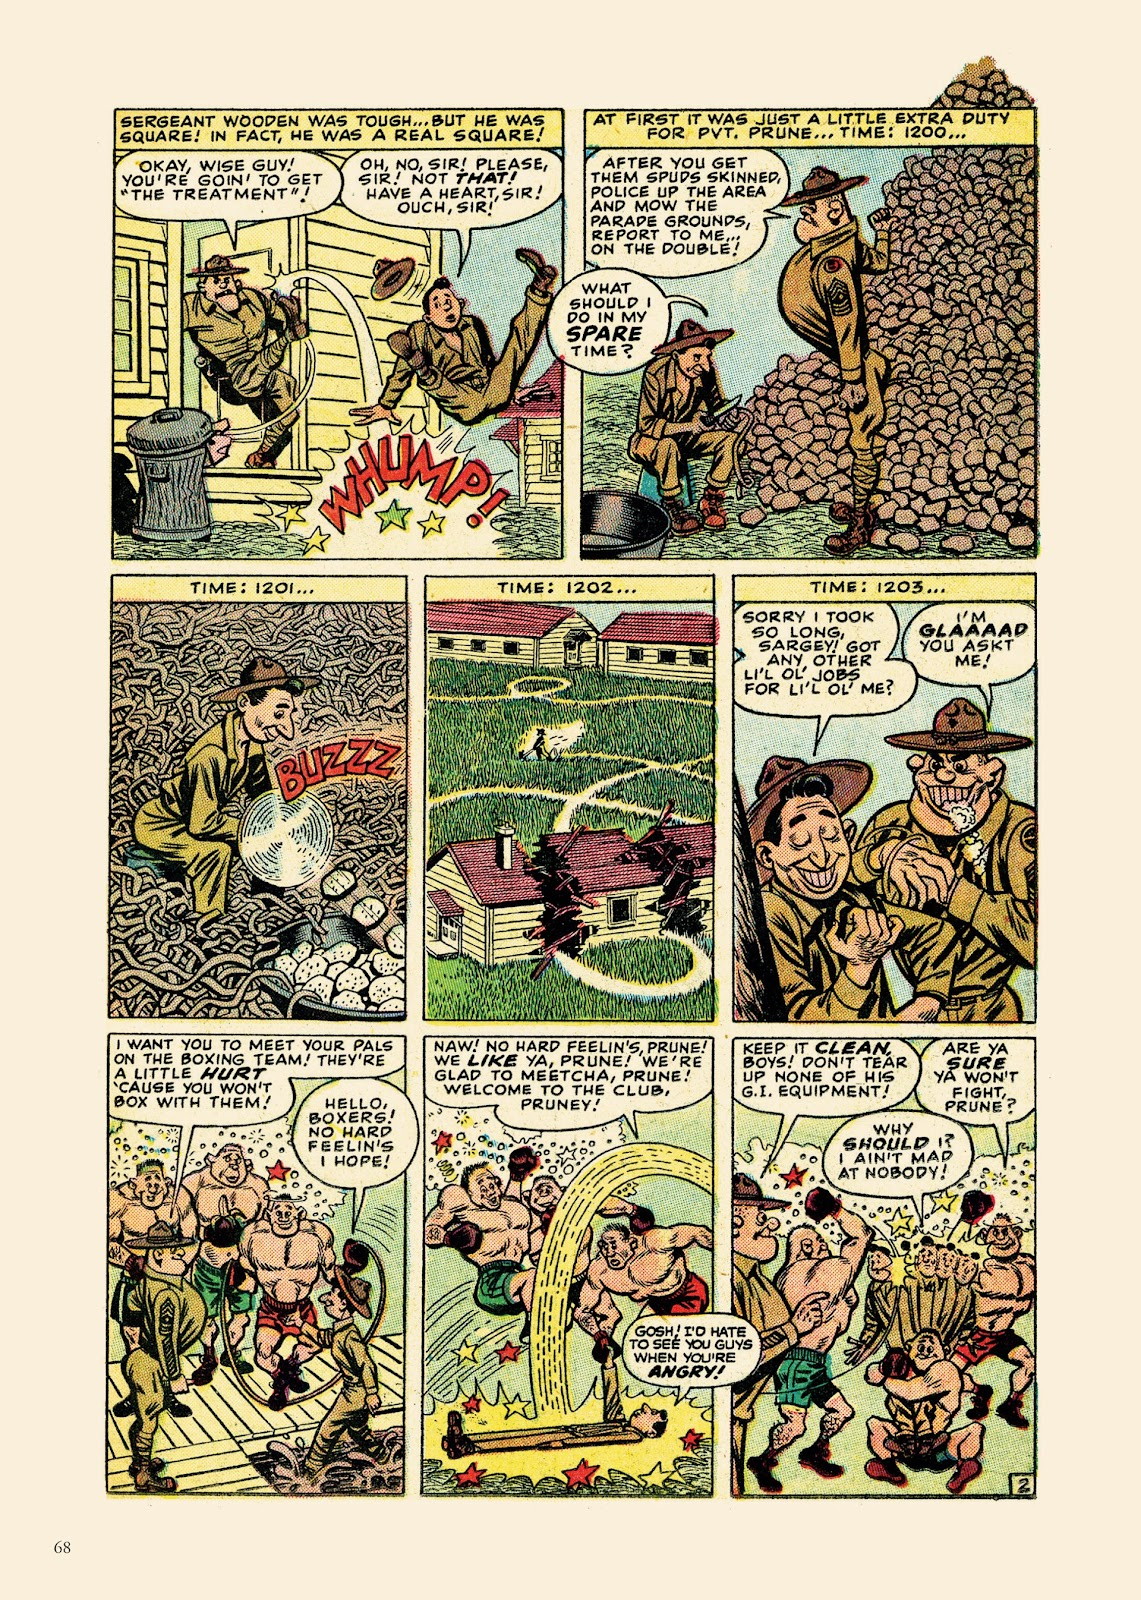 Read online Sincerest Form of Parody: The Best 1950s MAD-Inspired Satirical Comics comic -  Issue # TPB (Part 1) - 69